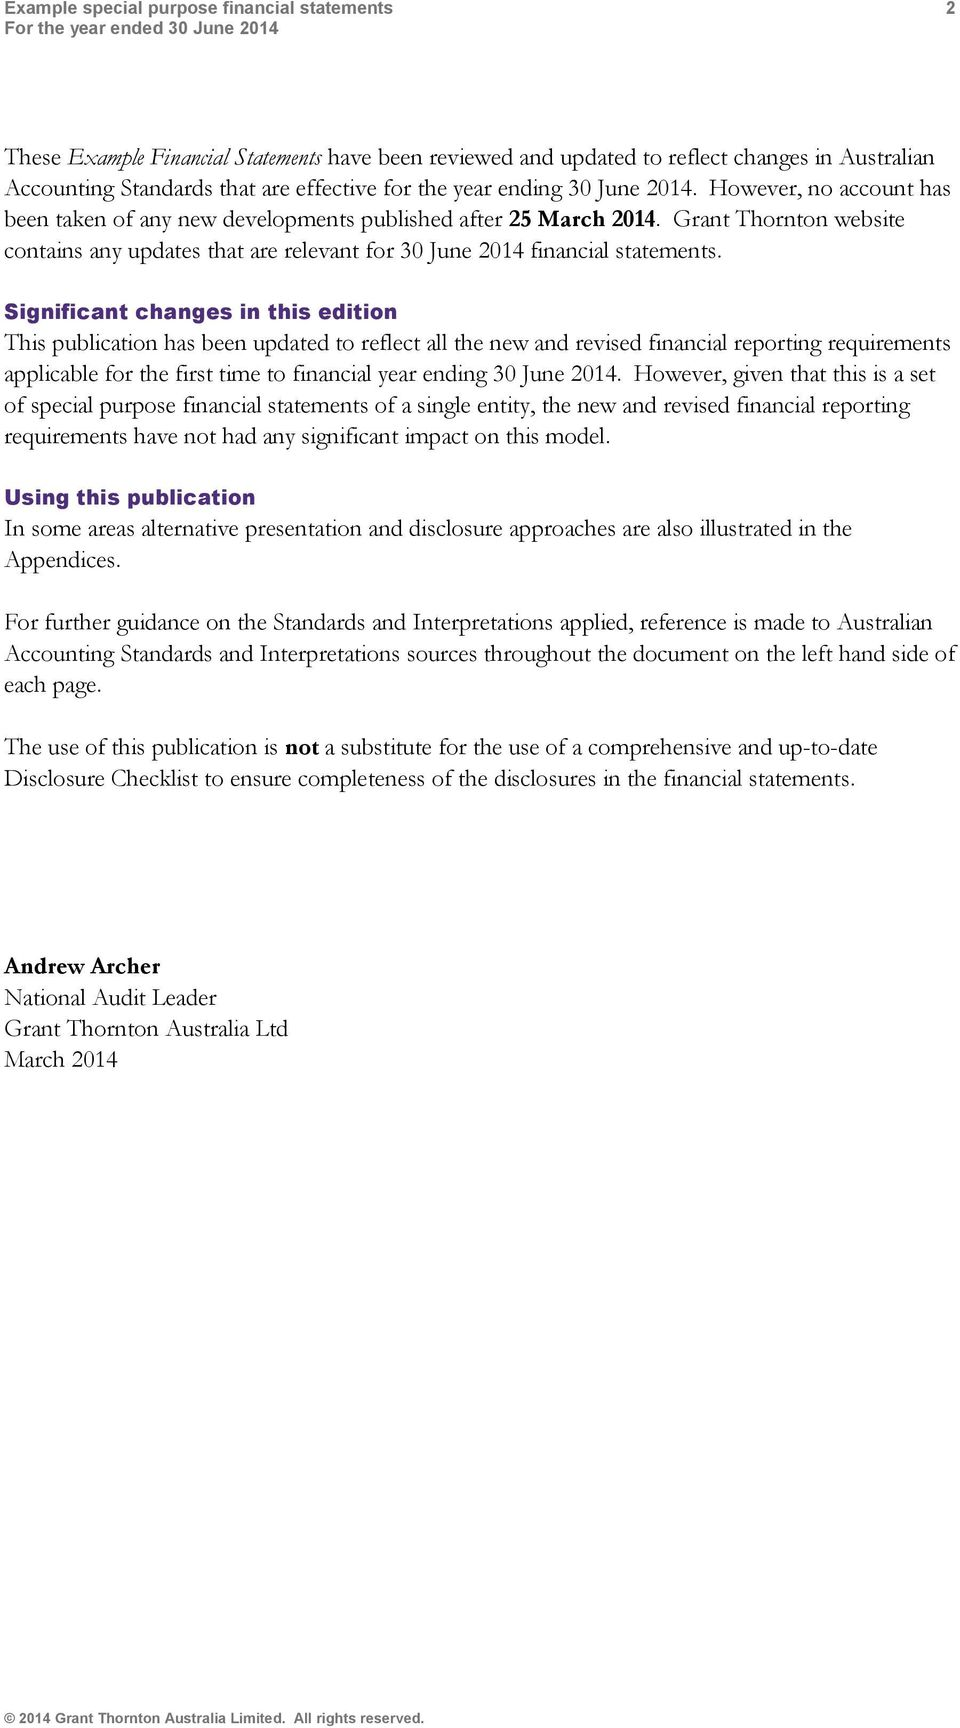 Grant Thornton website contains any updates that are relevant for 30 June 2014 financial statements.